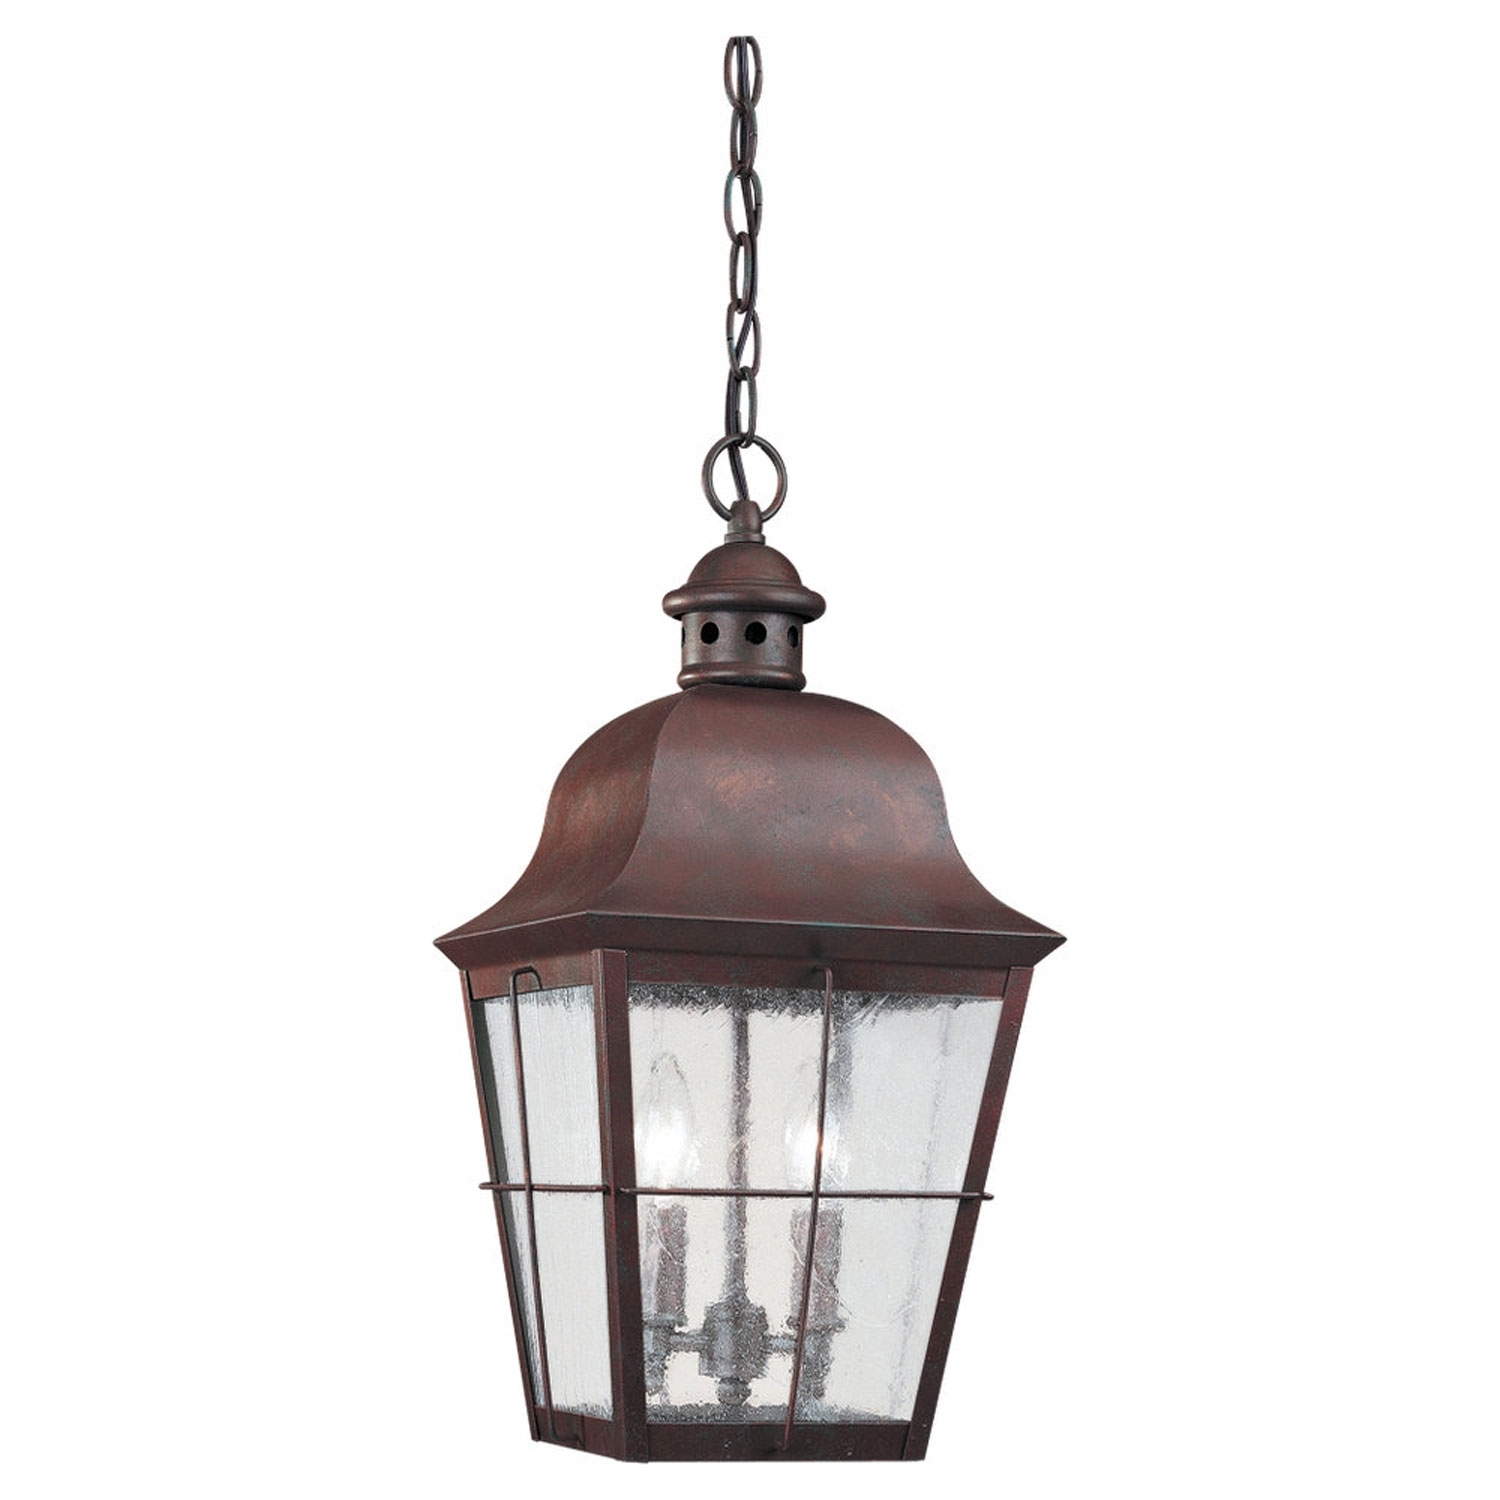 Copper Outdoor Hanging Lighting | Bellacor Within Outdoor Hanging Lanterns With Stand (View 11 of 15)